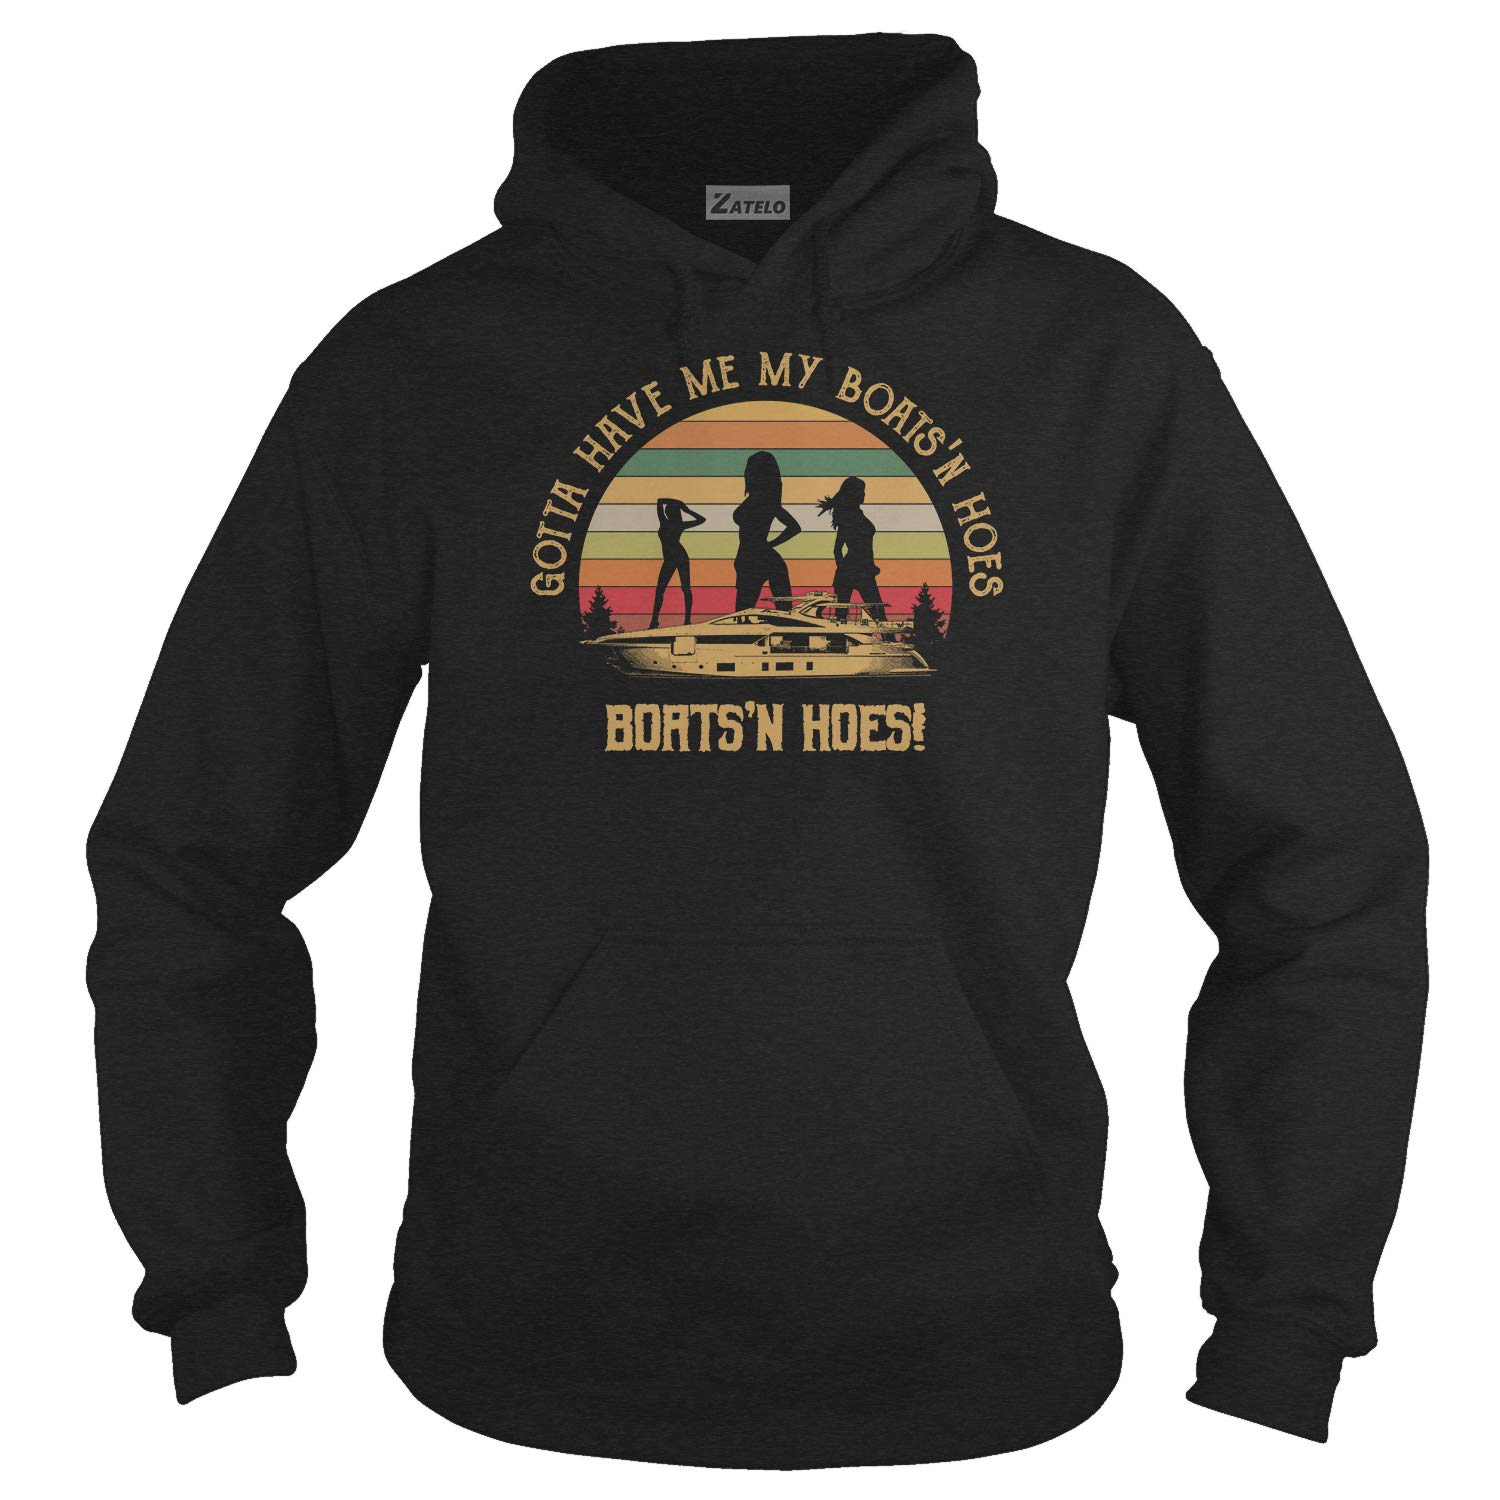 Gotta Have ME My BOATSN Hoes BOATSN Hoes! Vintage Retro T-Shirt